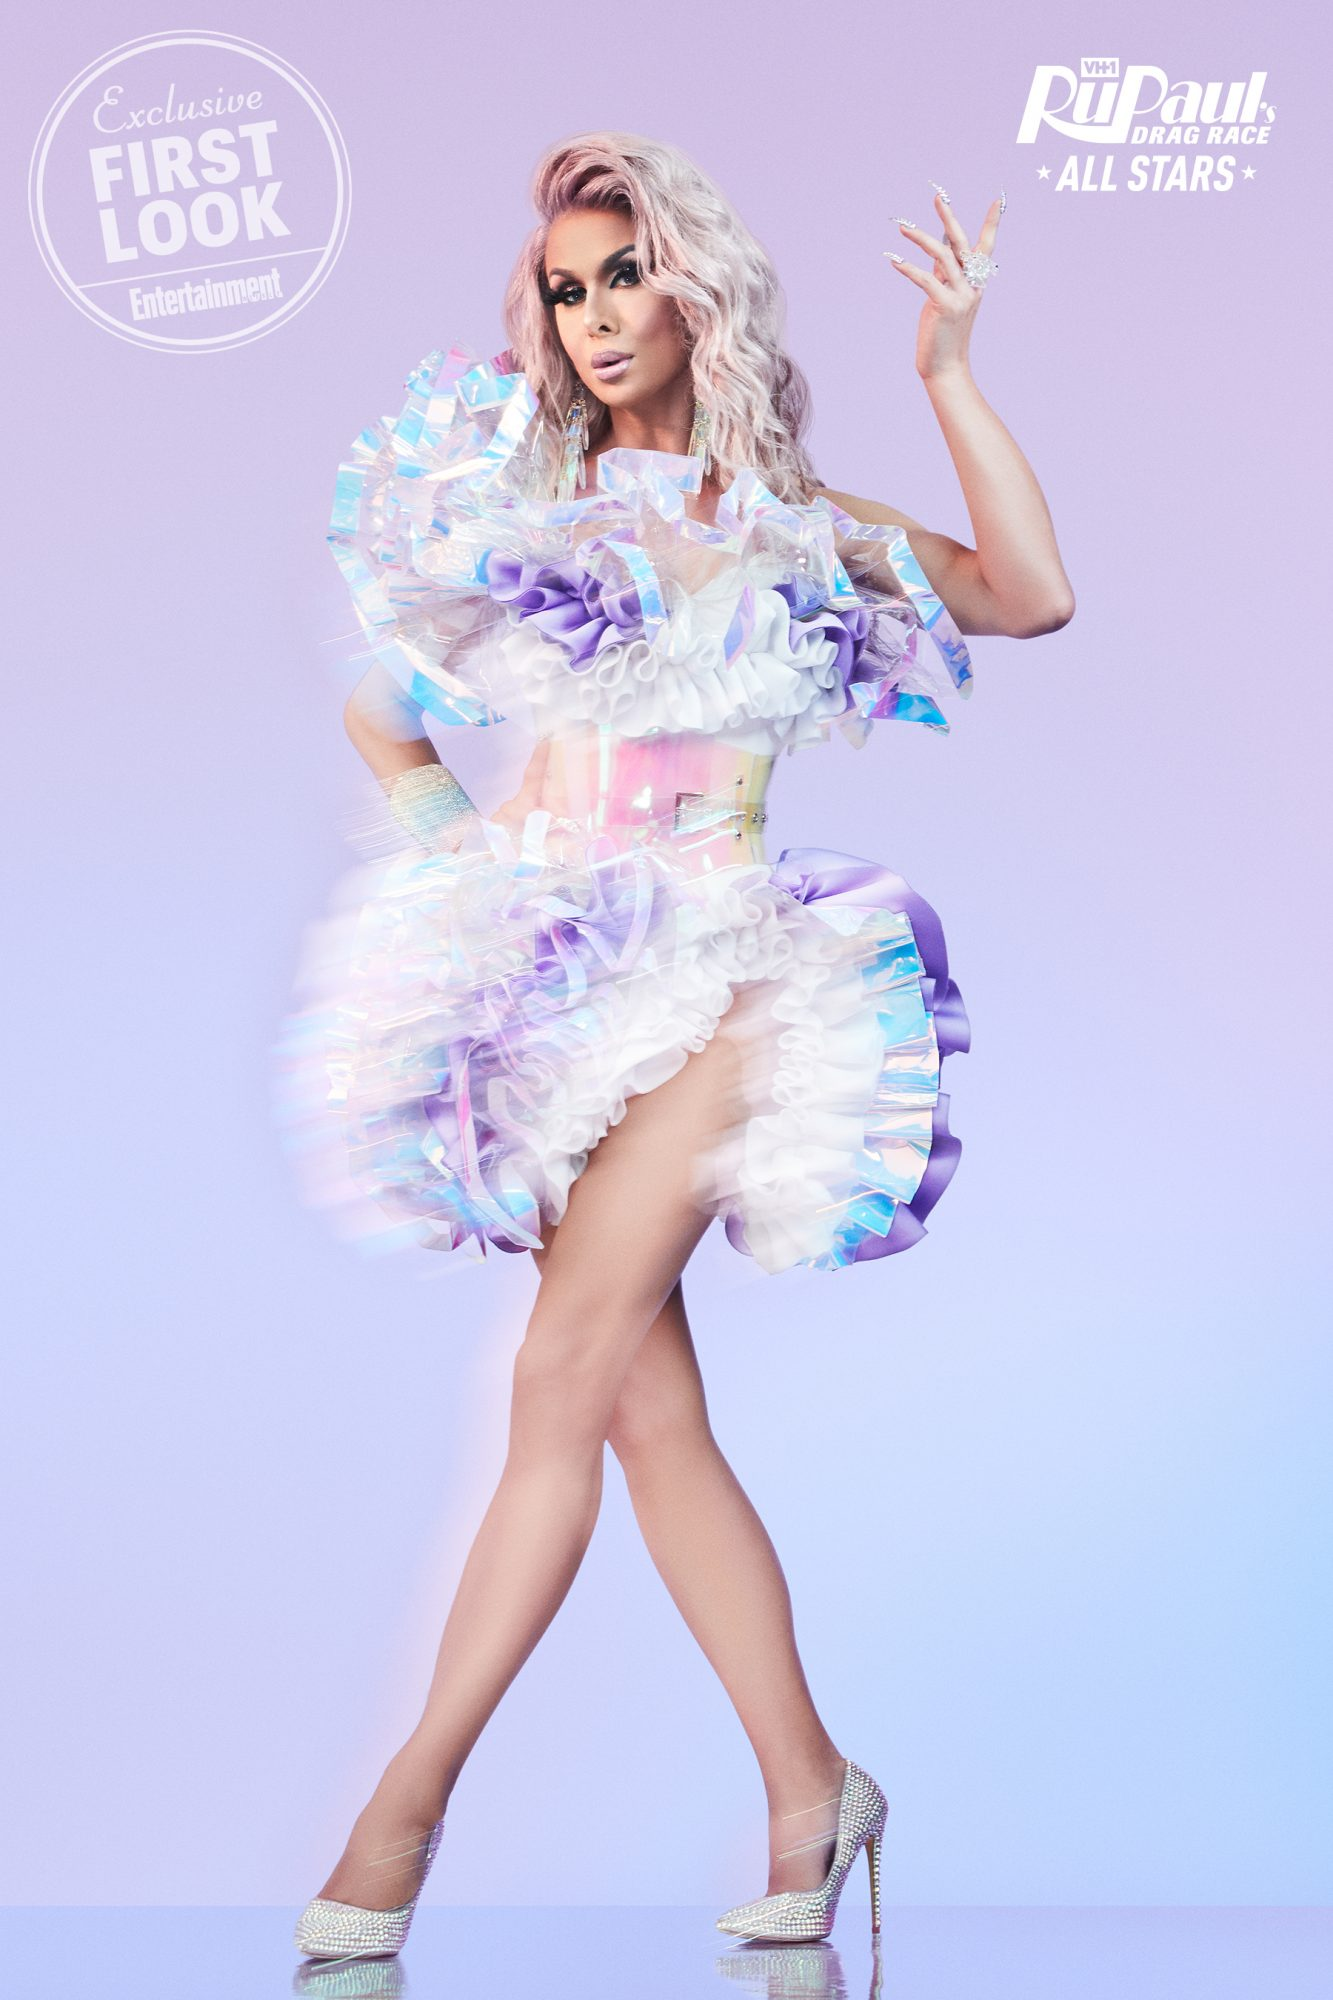 VH1_RPDR_AS4_digital_1800x2700_individual_08